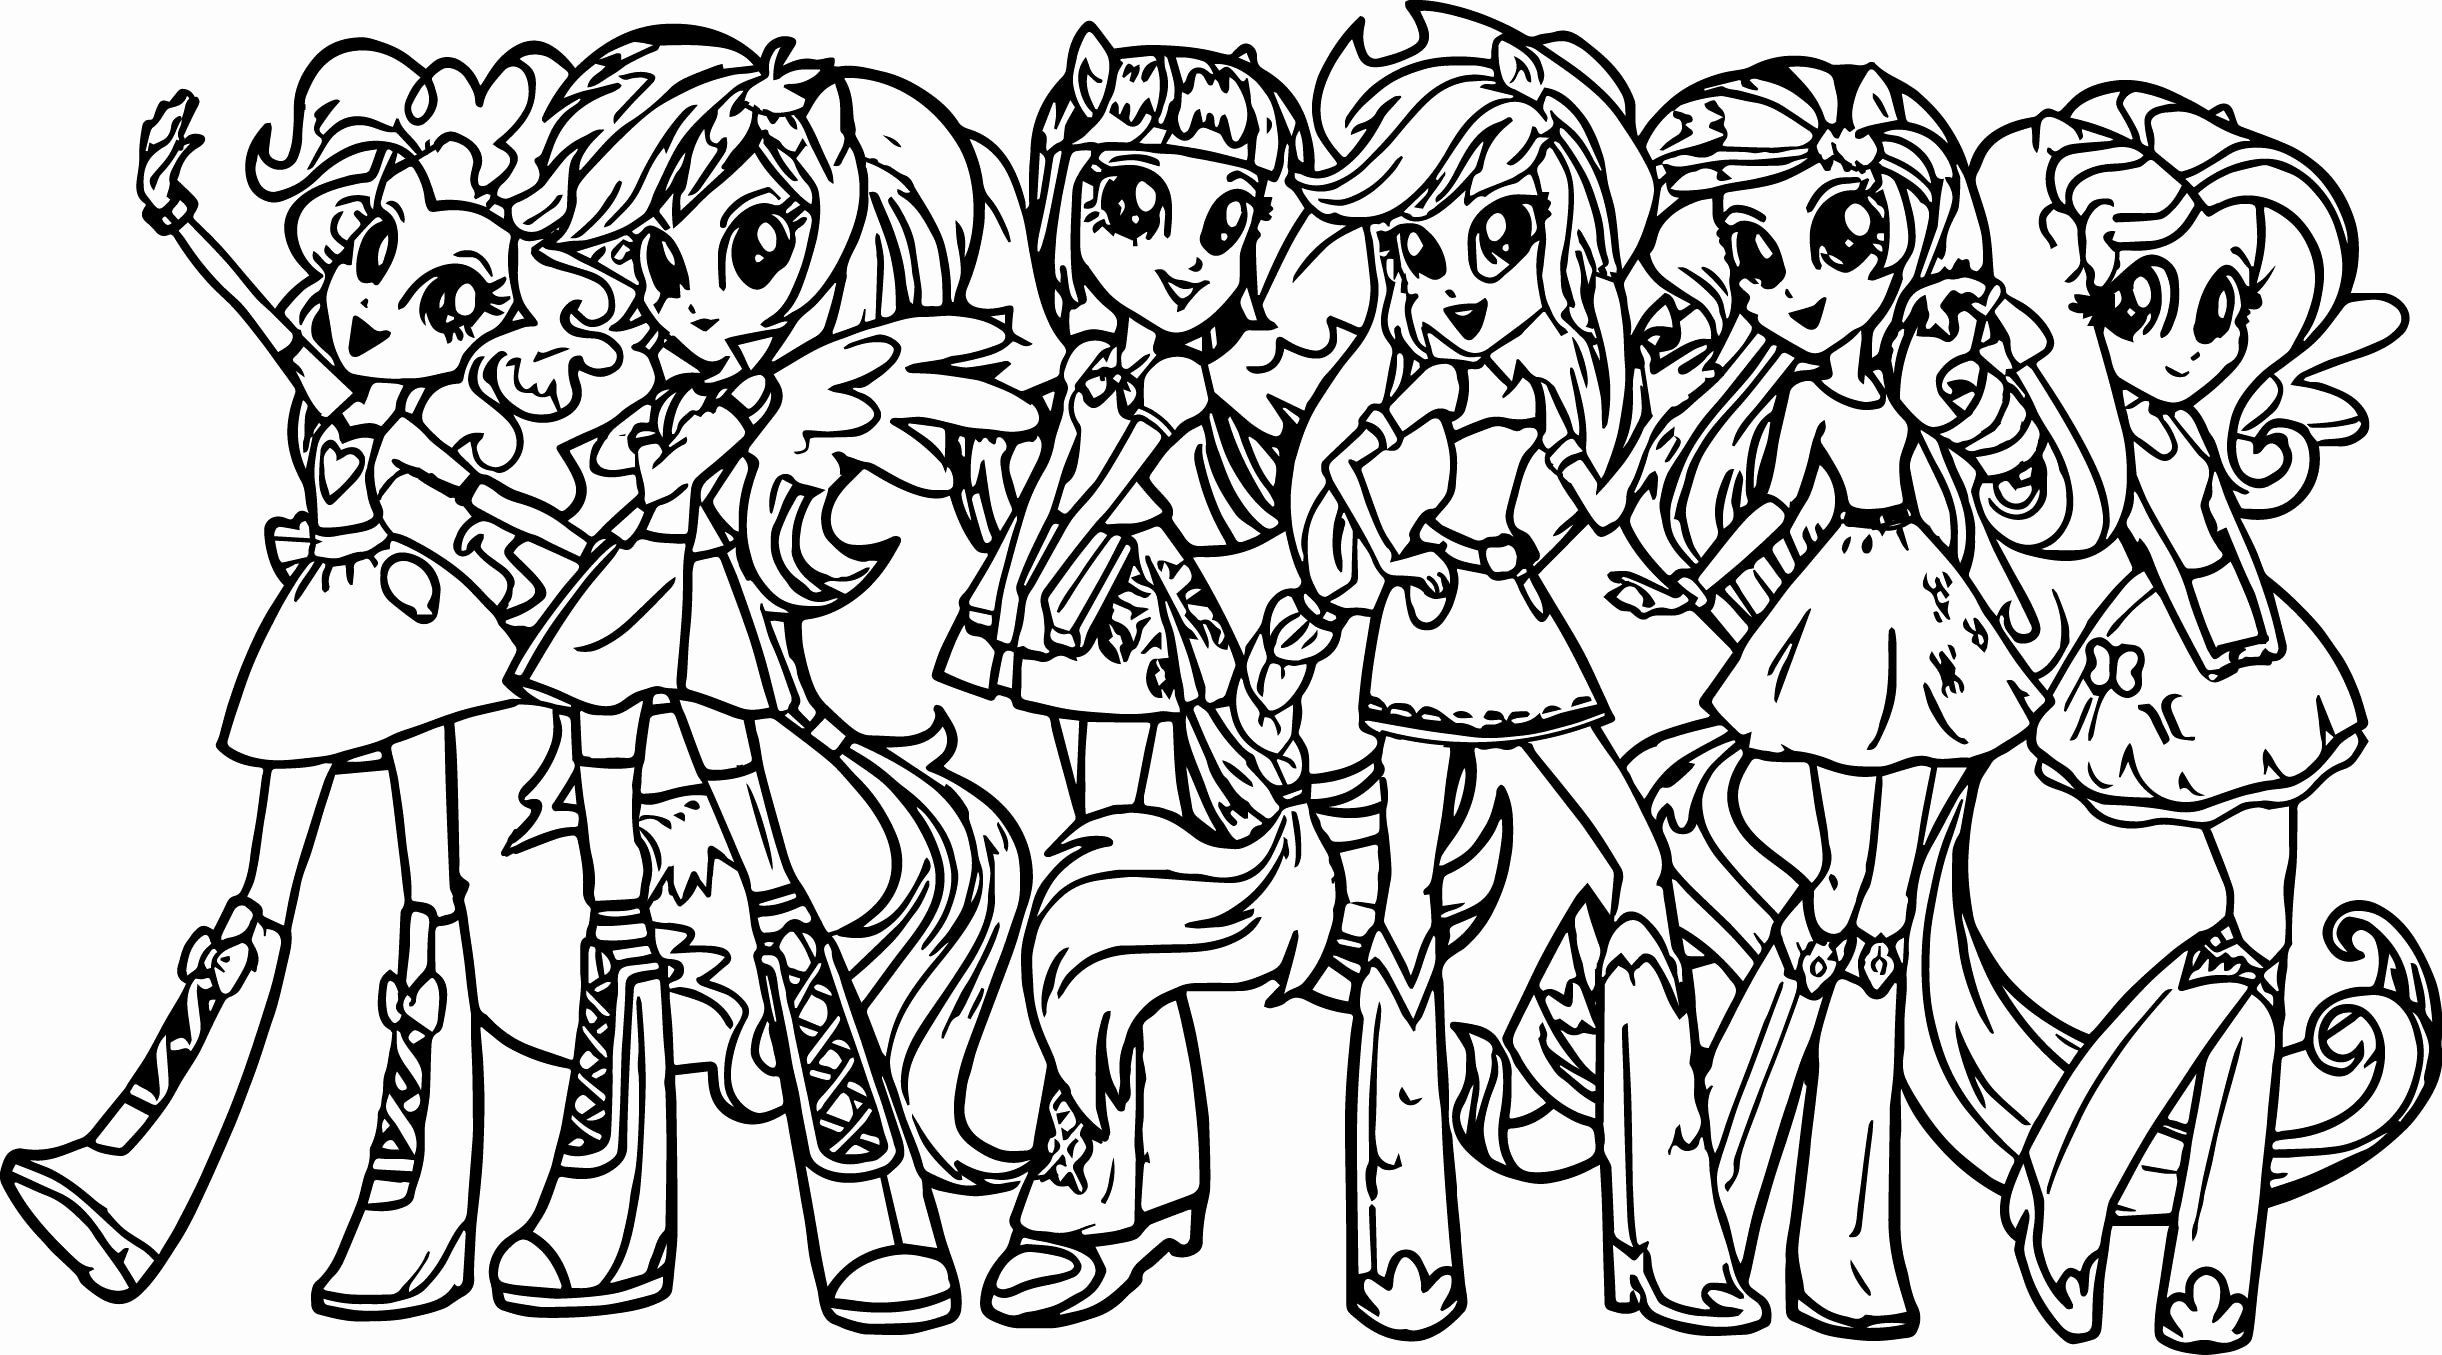 My Little Pony Coloring Book Elegant My Little Pony Human Coloring Pages To Print My Little Pony Coloring My Little Pony Drawing Coloring Pages For Girls